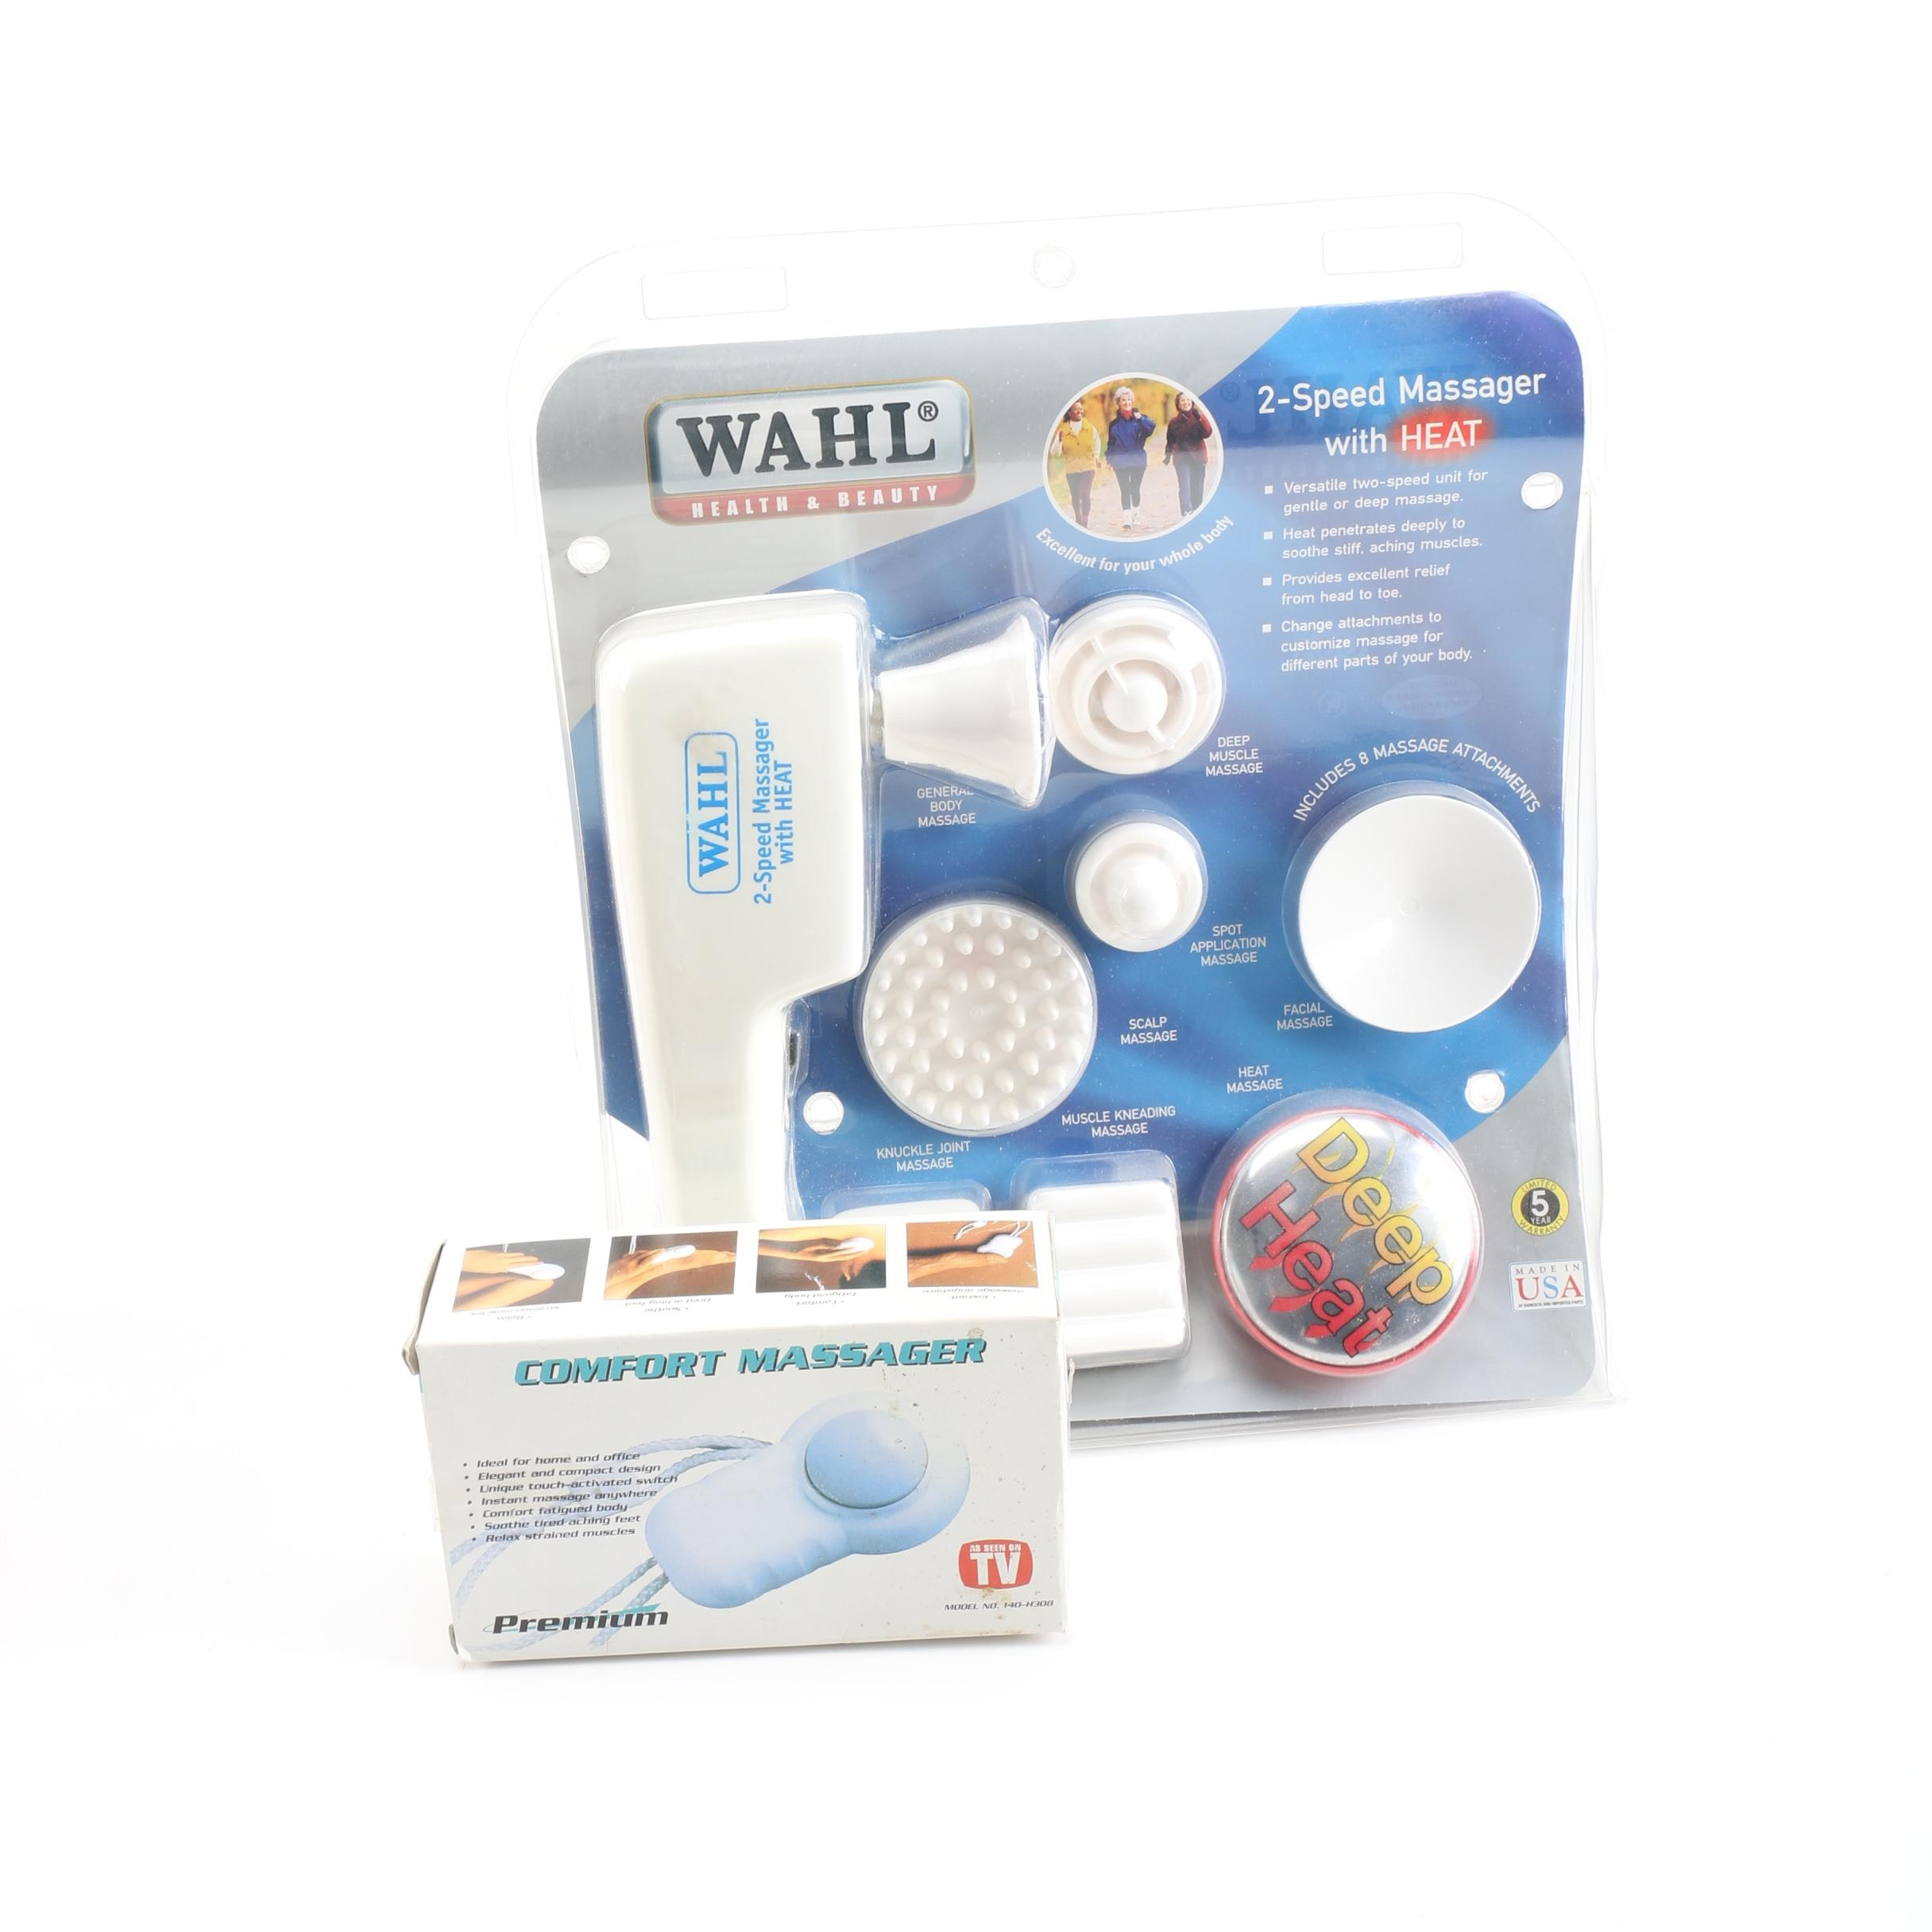 Wahl Heated Massager and Premium Comfort Massager